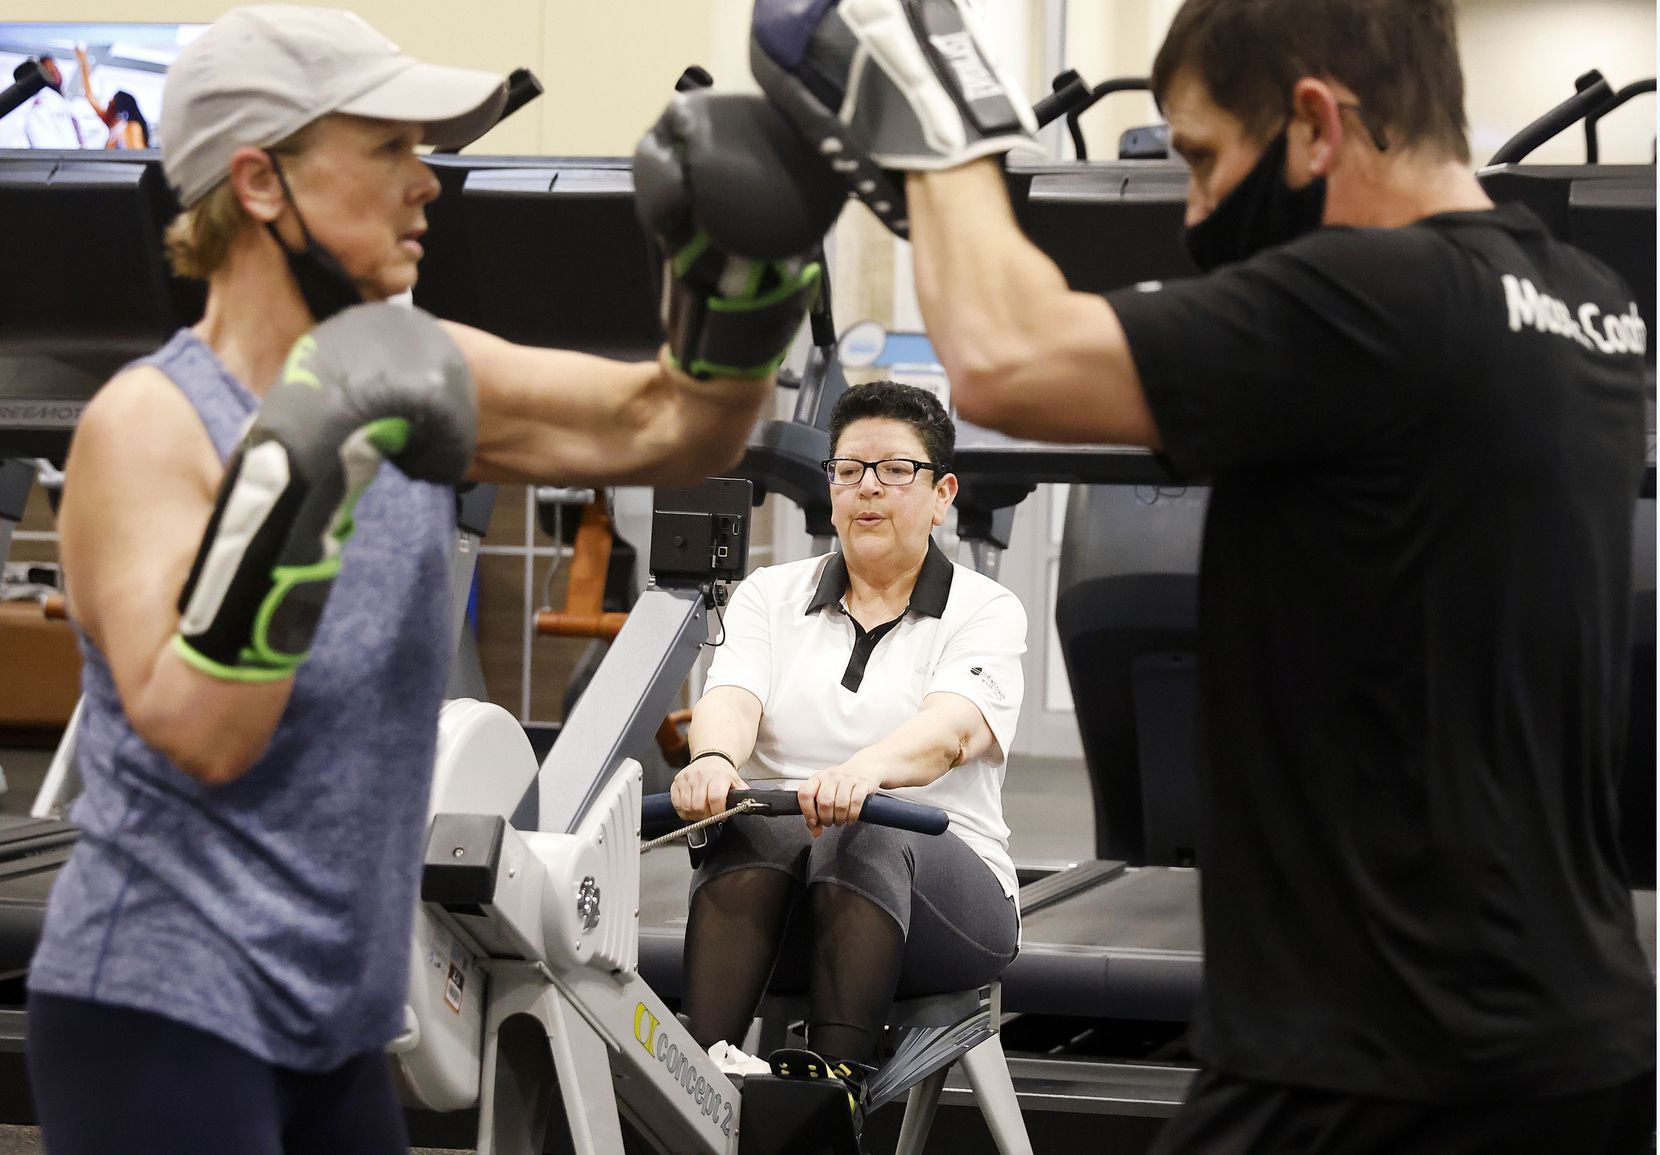 Gym member Melba Siebel of McKinney works out on a rowing machine while trainer Brent Wade and customer Kelli Kocher of Lewisville wear masks to work out at 24 Hour Fitness in McKinney.